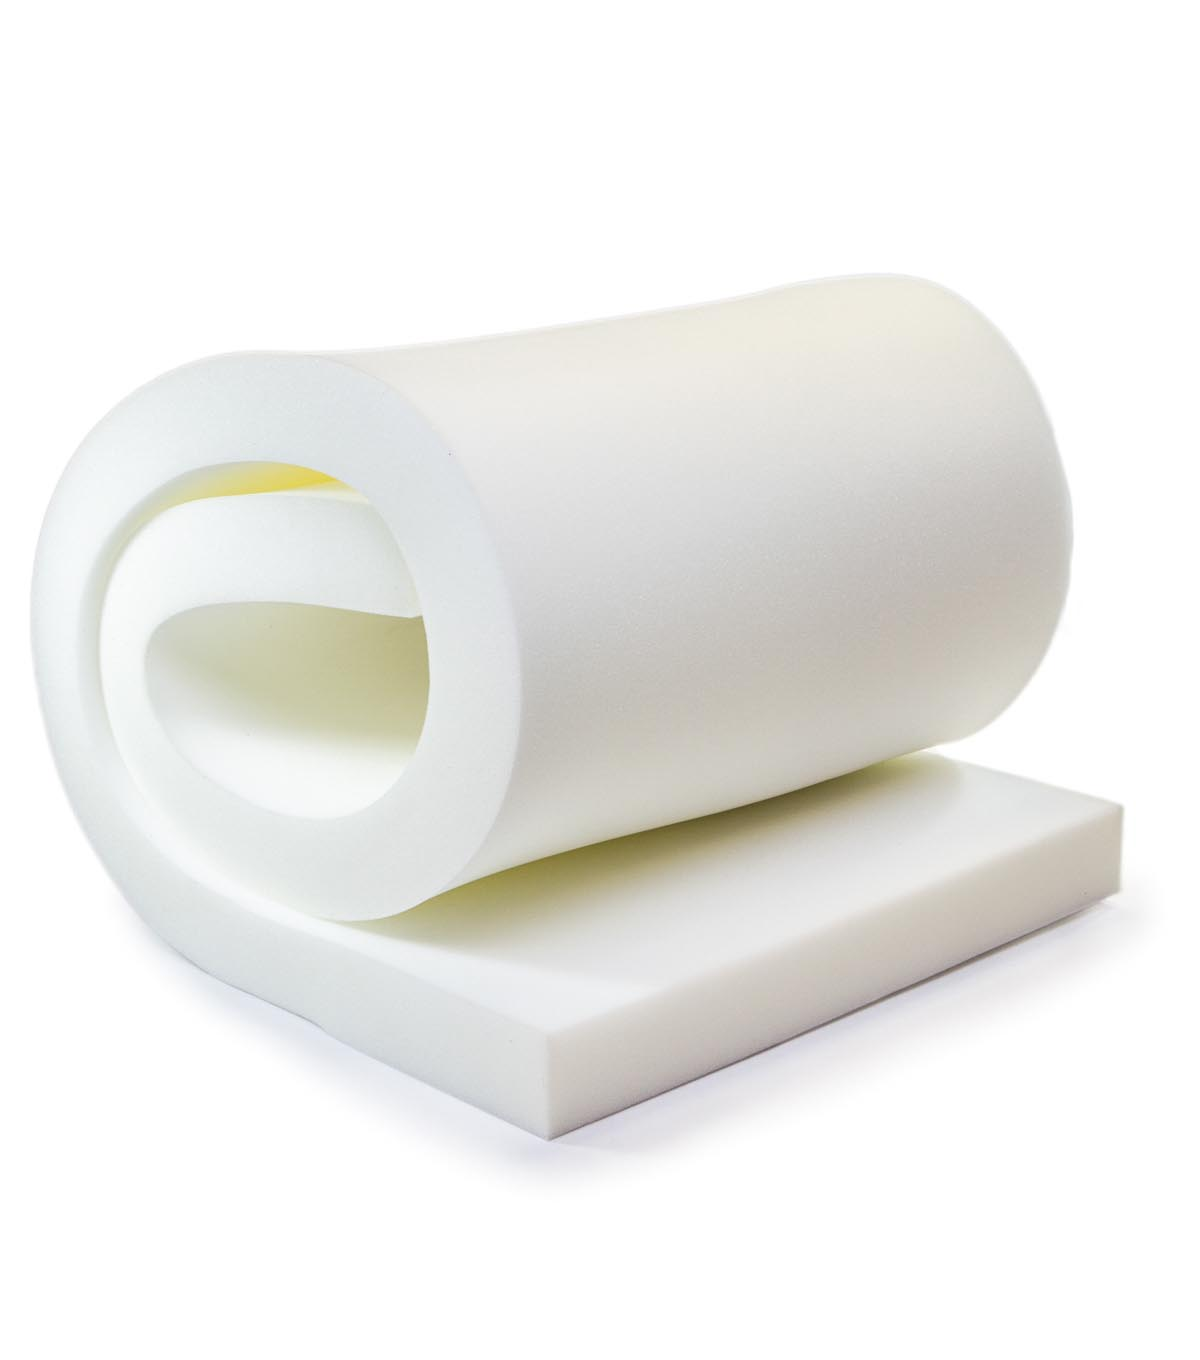 High Density Foam Sheets | High Density Foam Sheet | High Density Upholstery Foam